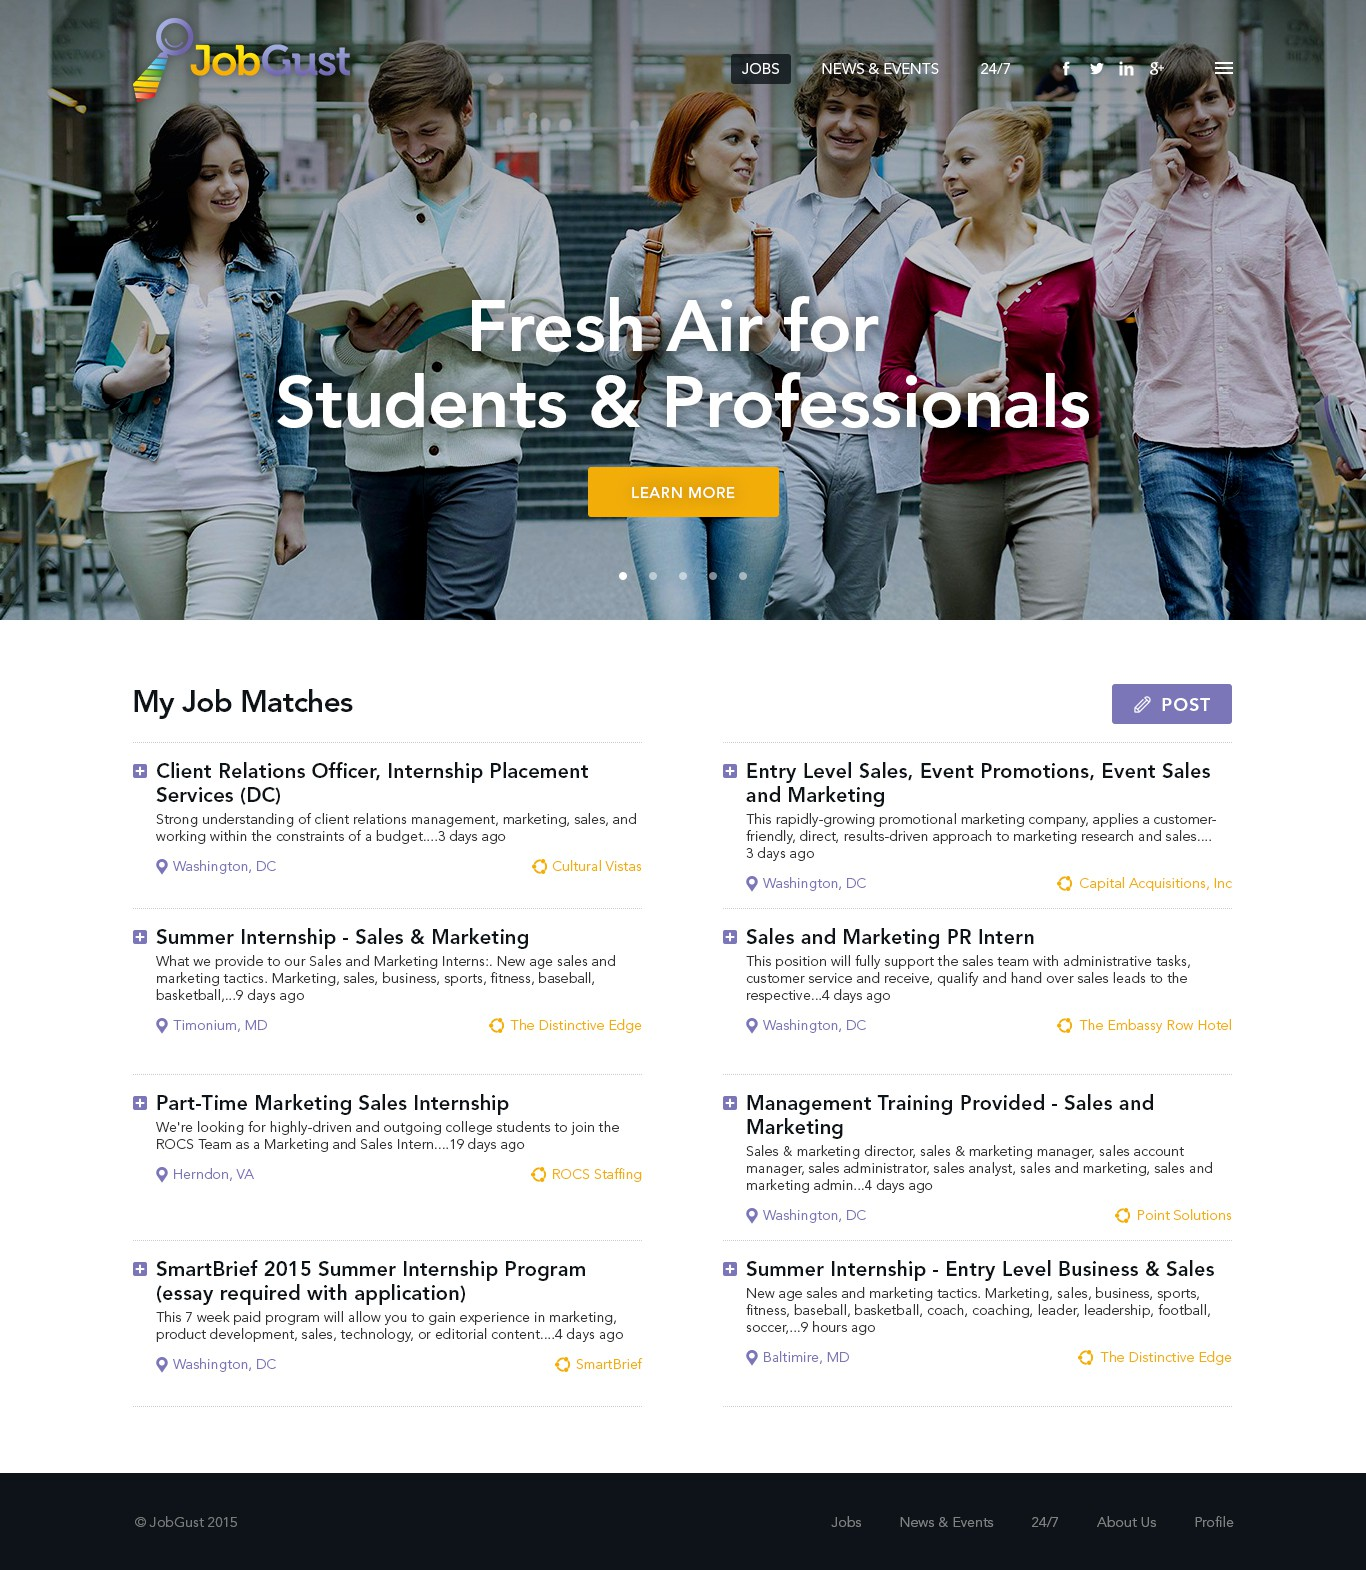 Create an Exciting Mobile Website for JobGust